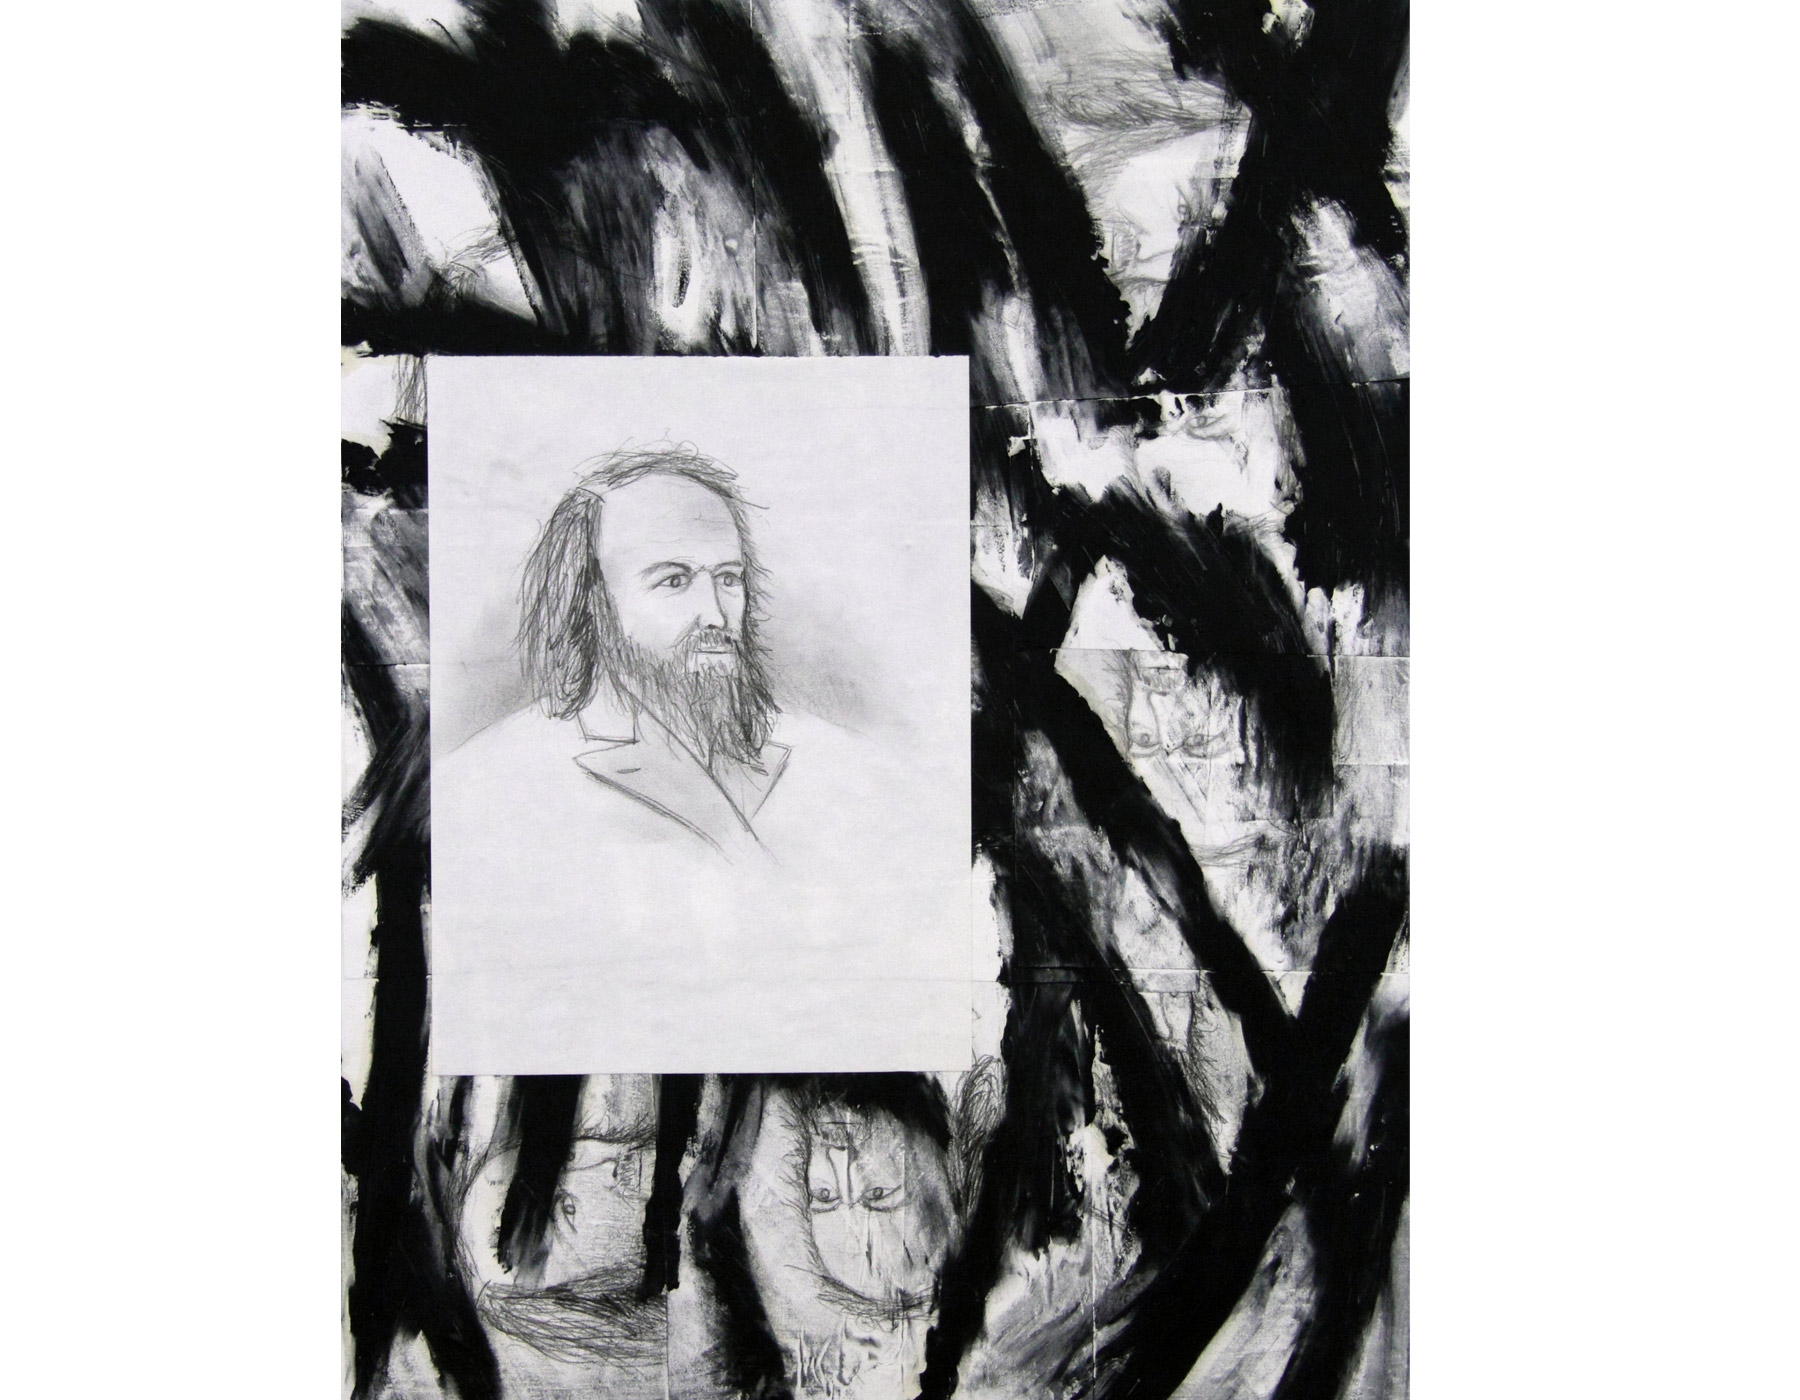 Portrait of Dimitri Ivanovich Mendeleev, father of the Periodic Table